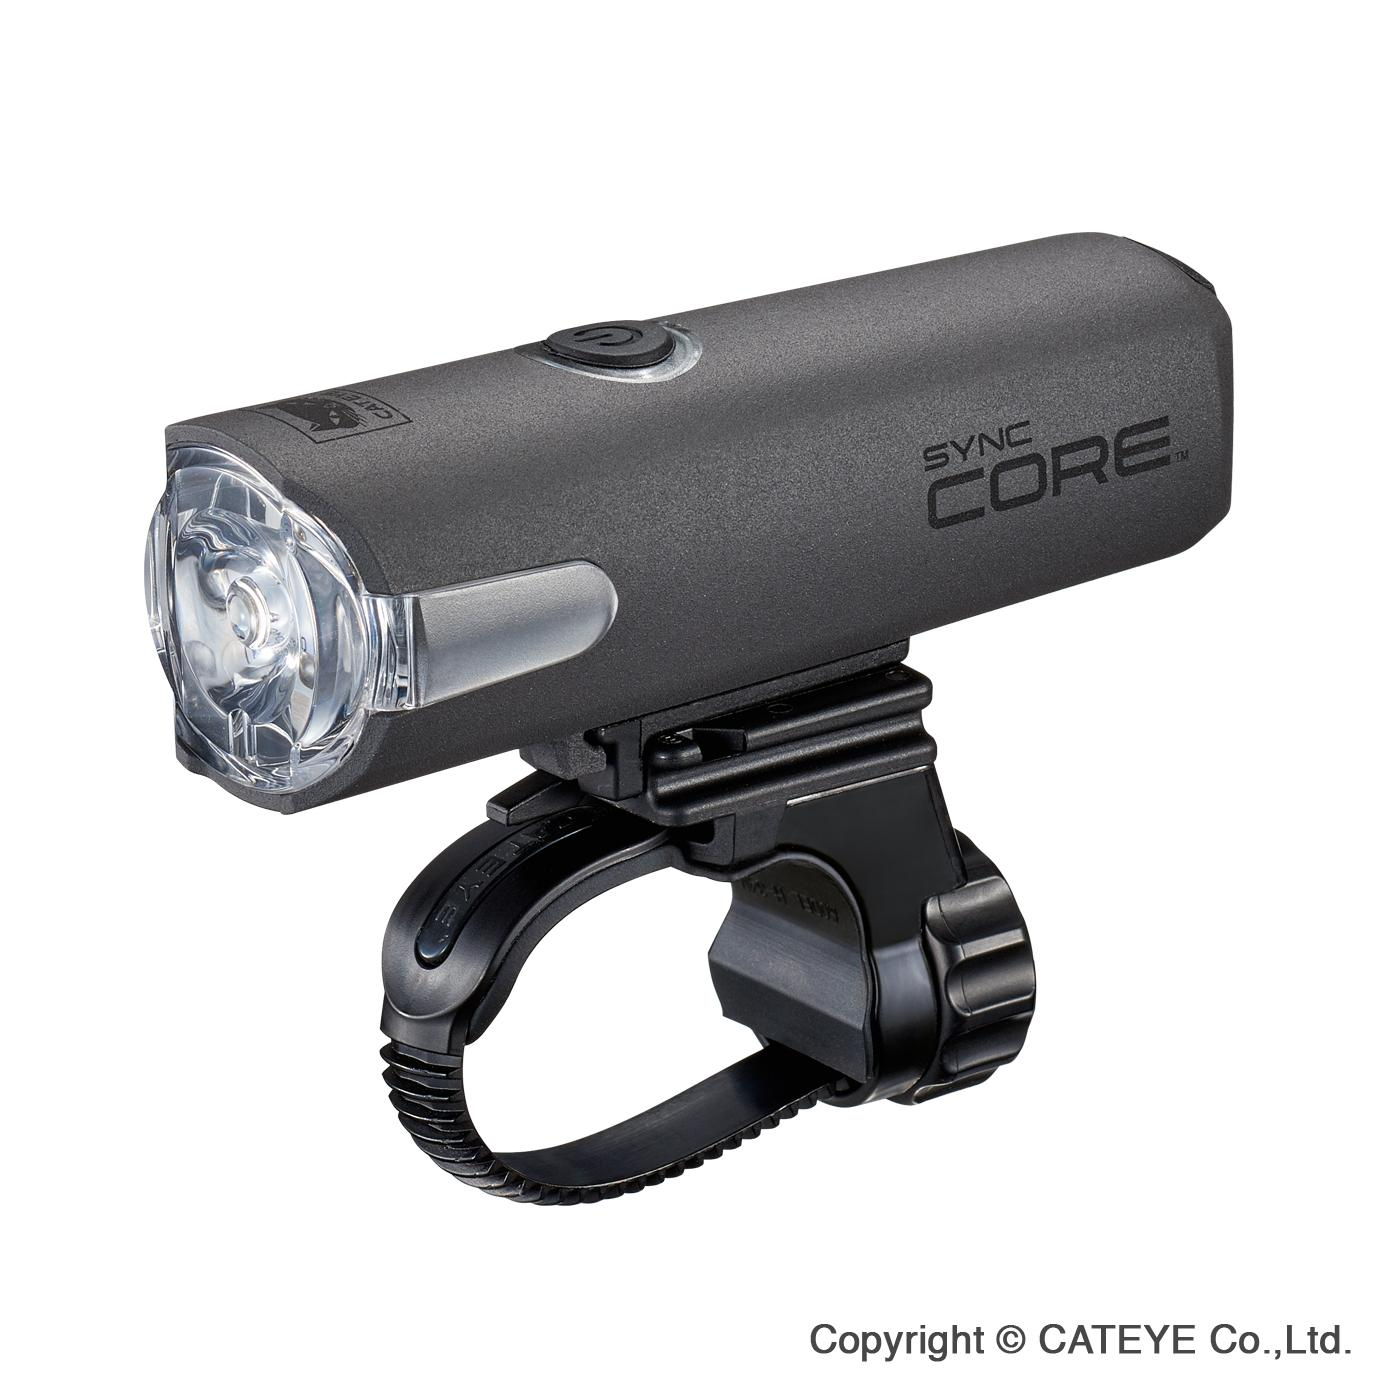 Cateye Sync Core + Sync Kinetic Front and Rear Bicycle Light Combo Set